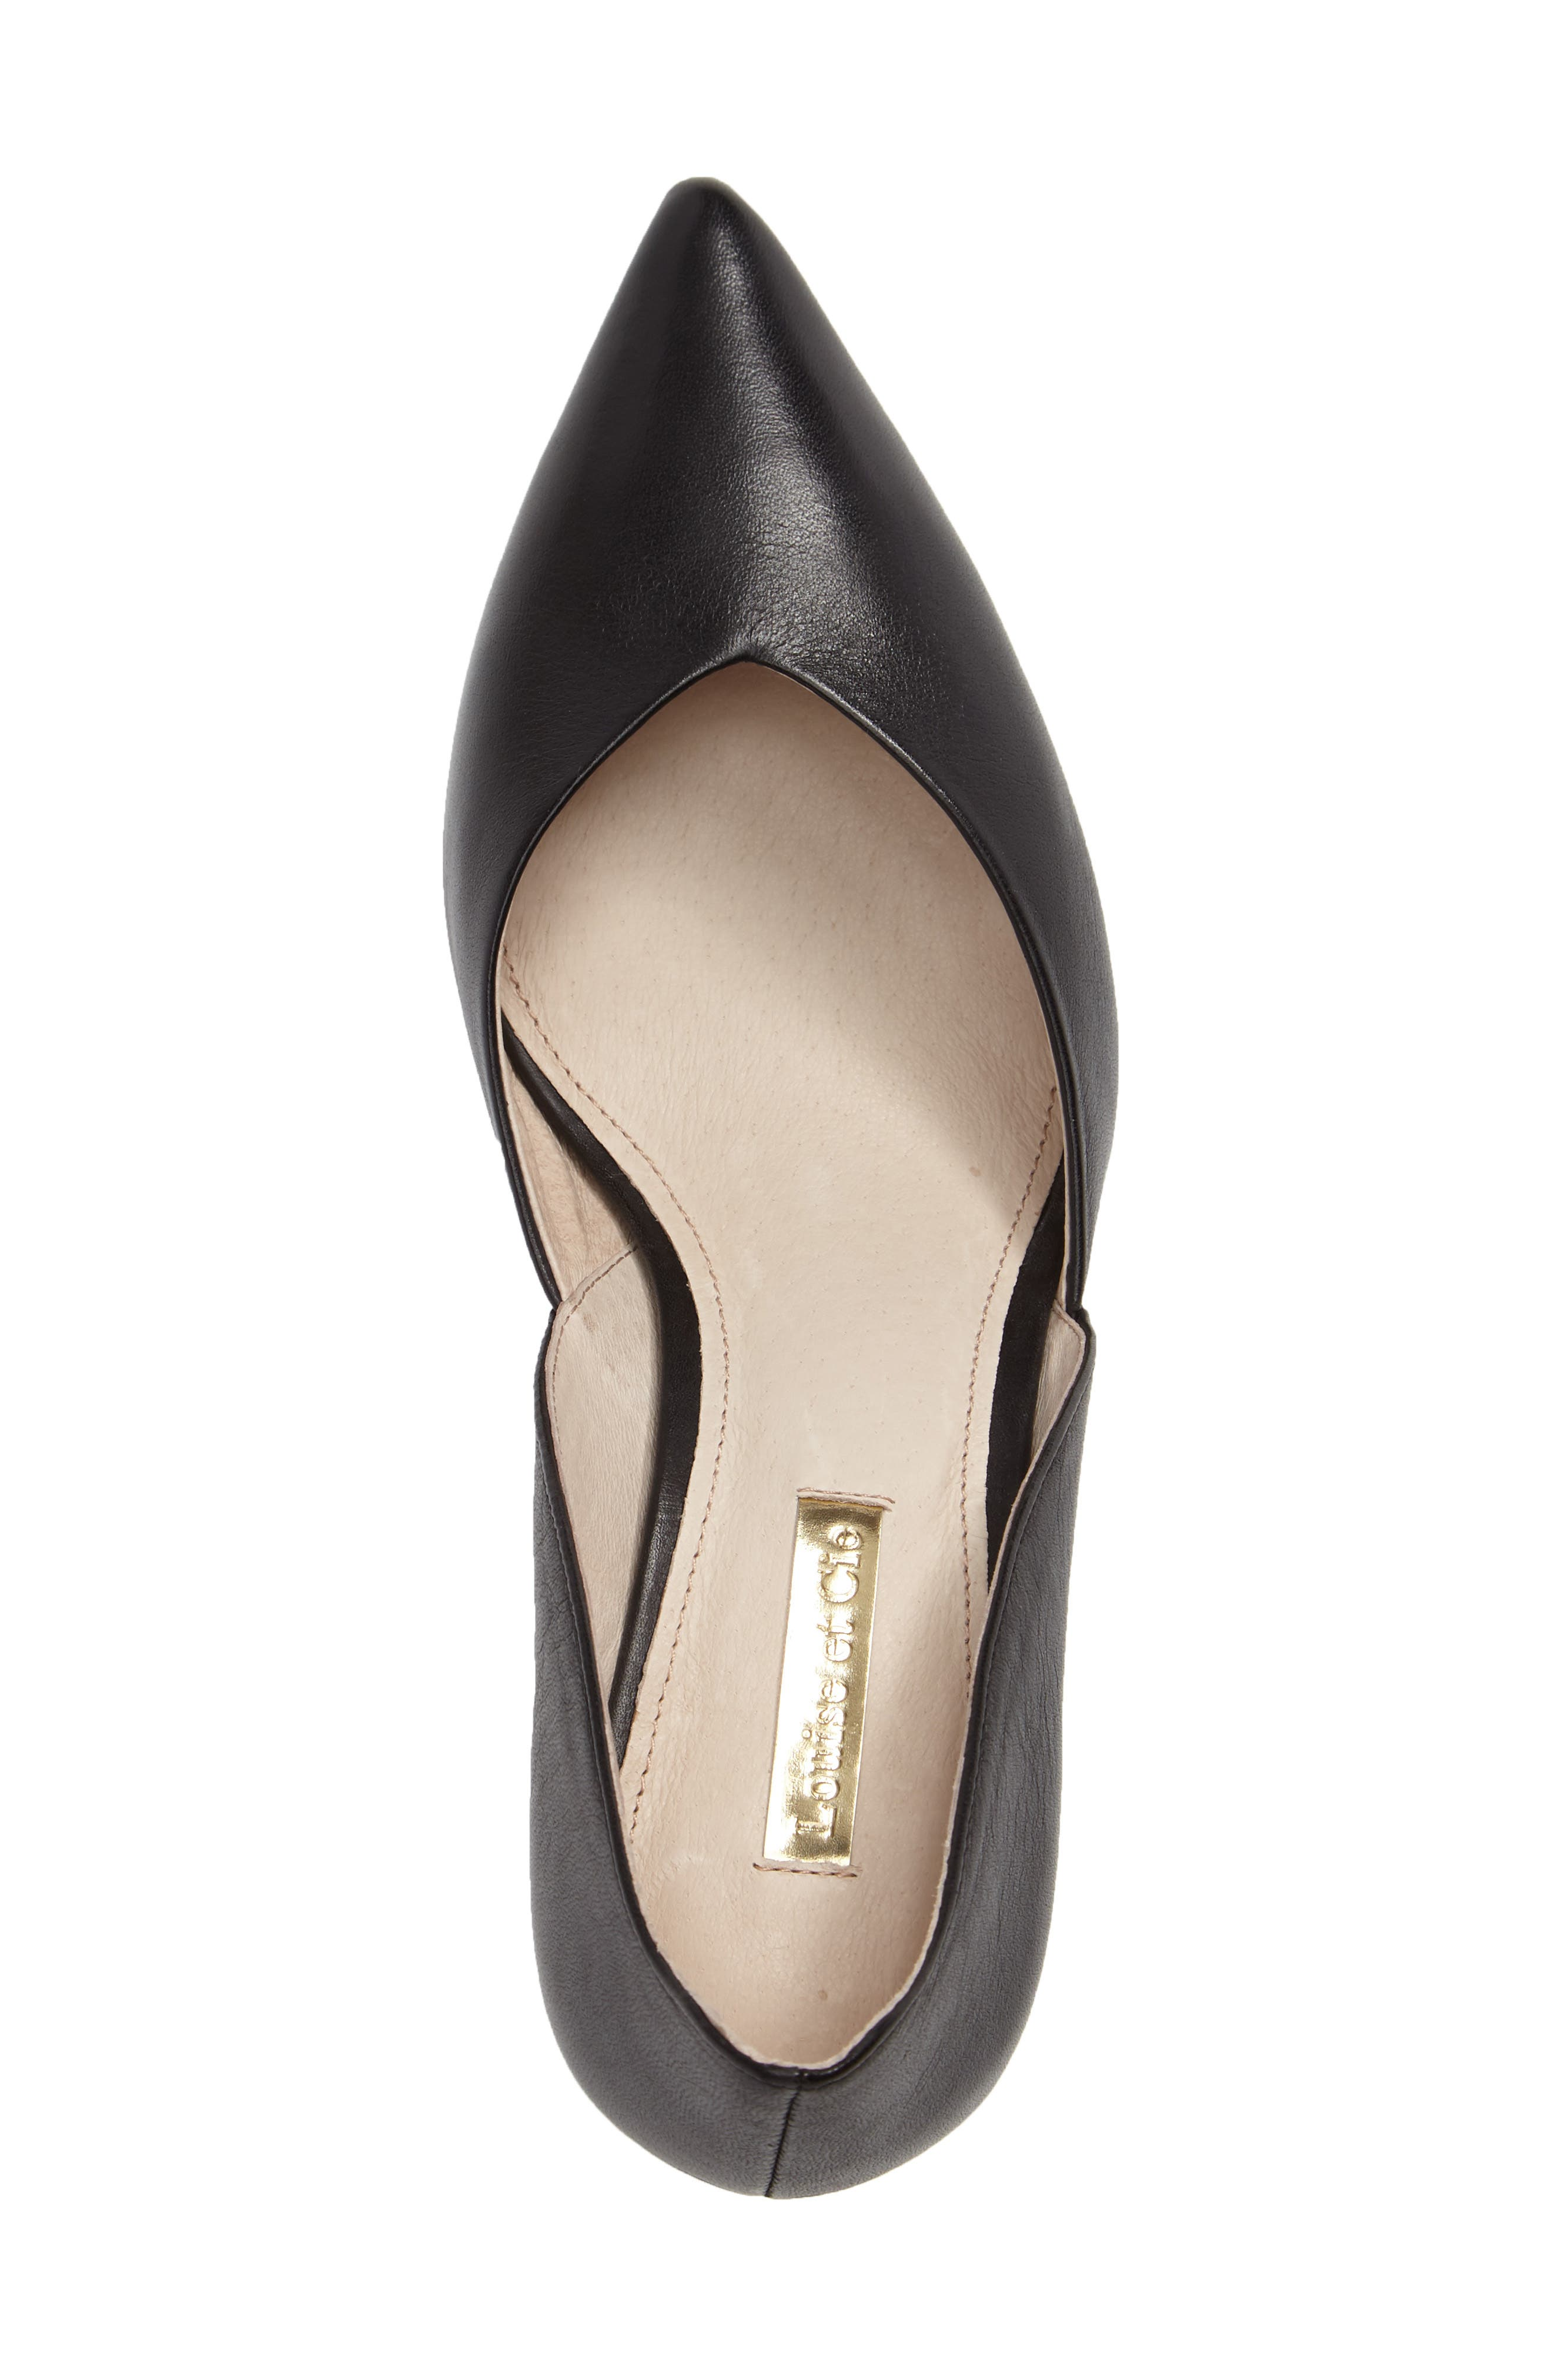 Jacee Pointy Toe Pump,                             Alternate thumbnail 5, color,                             002